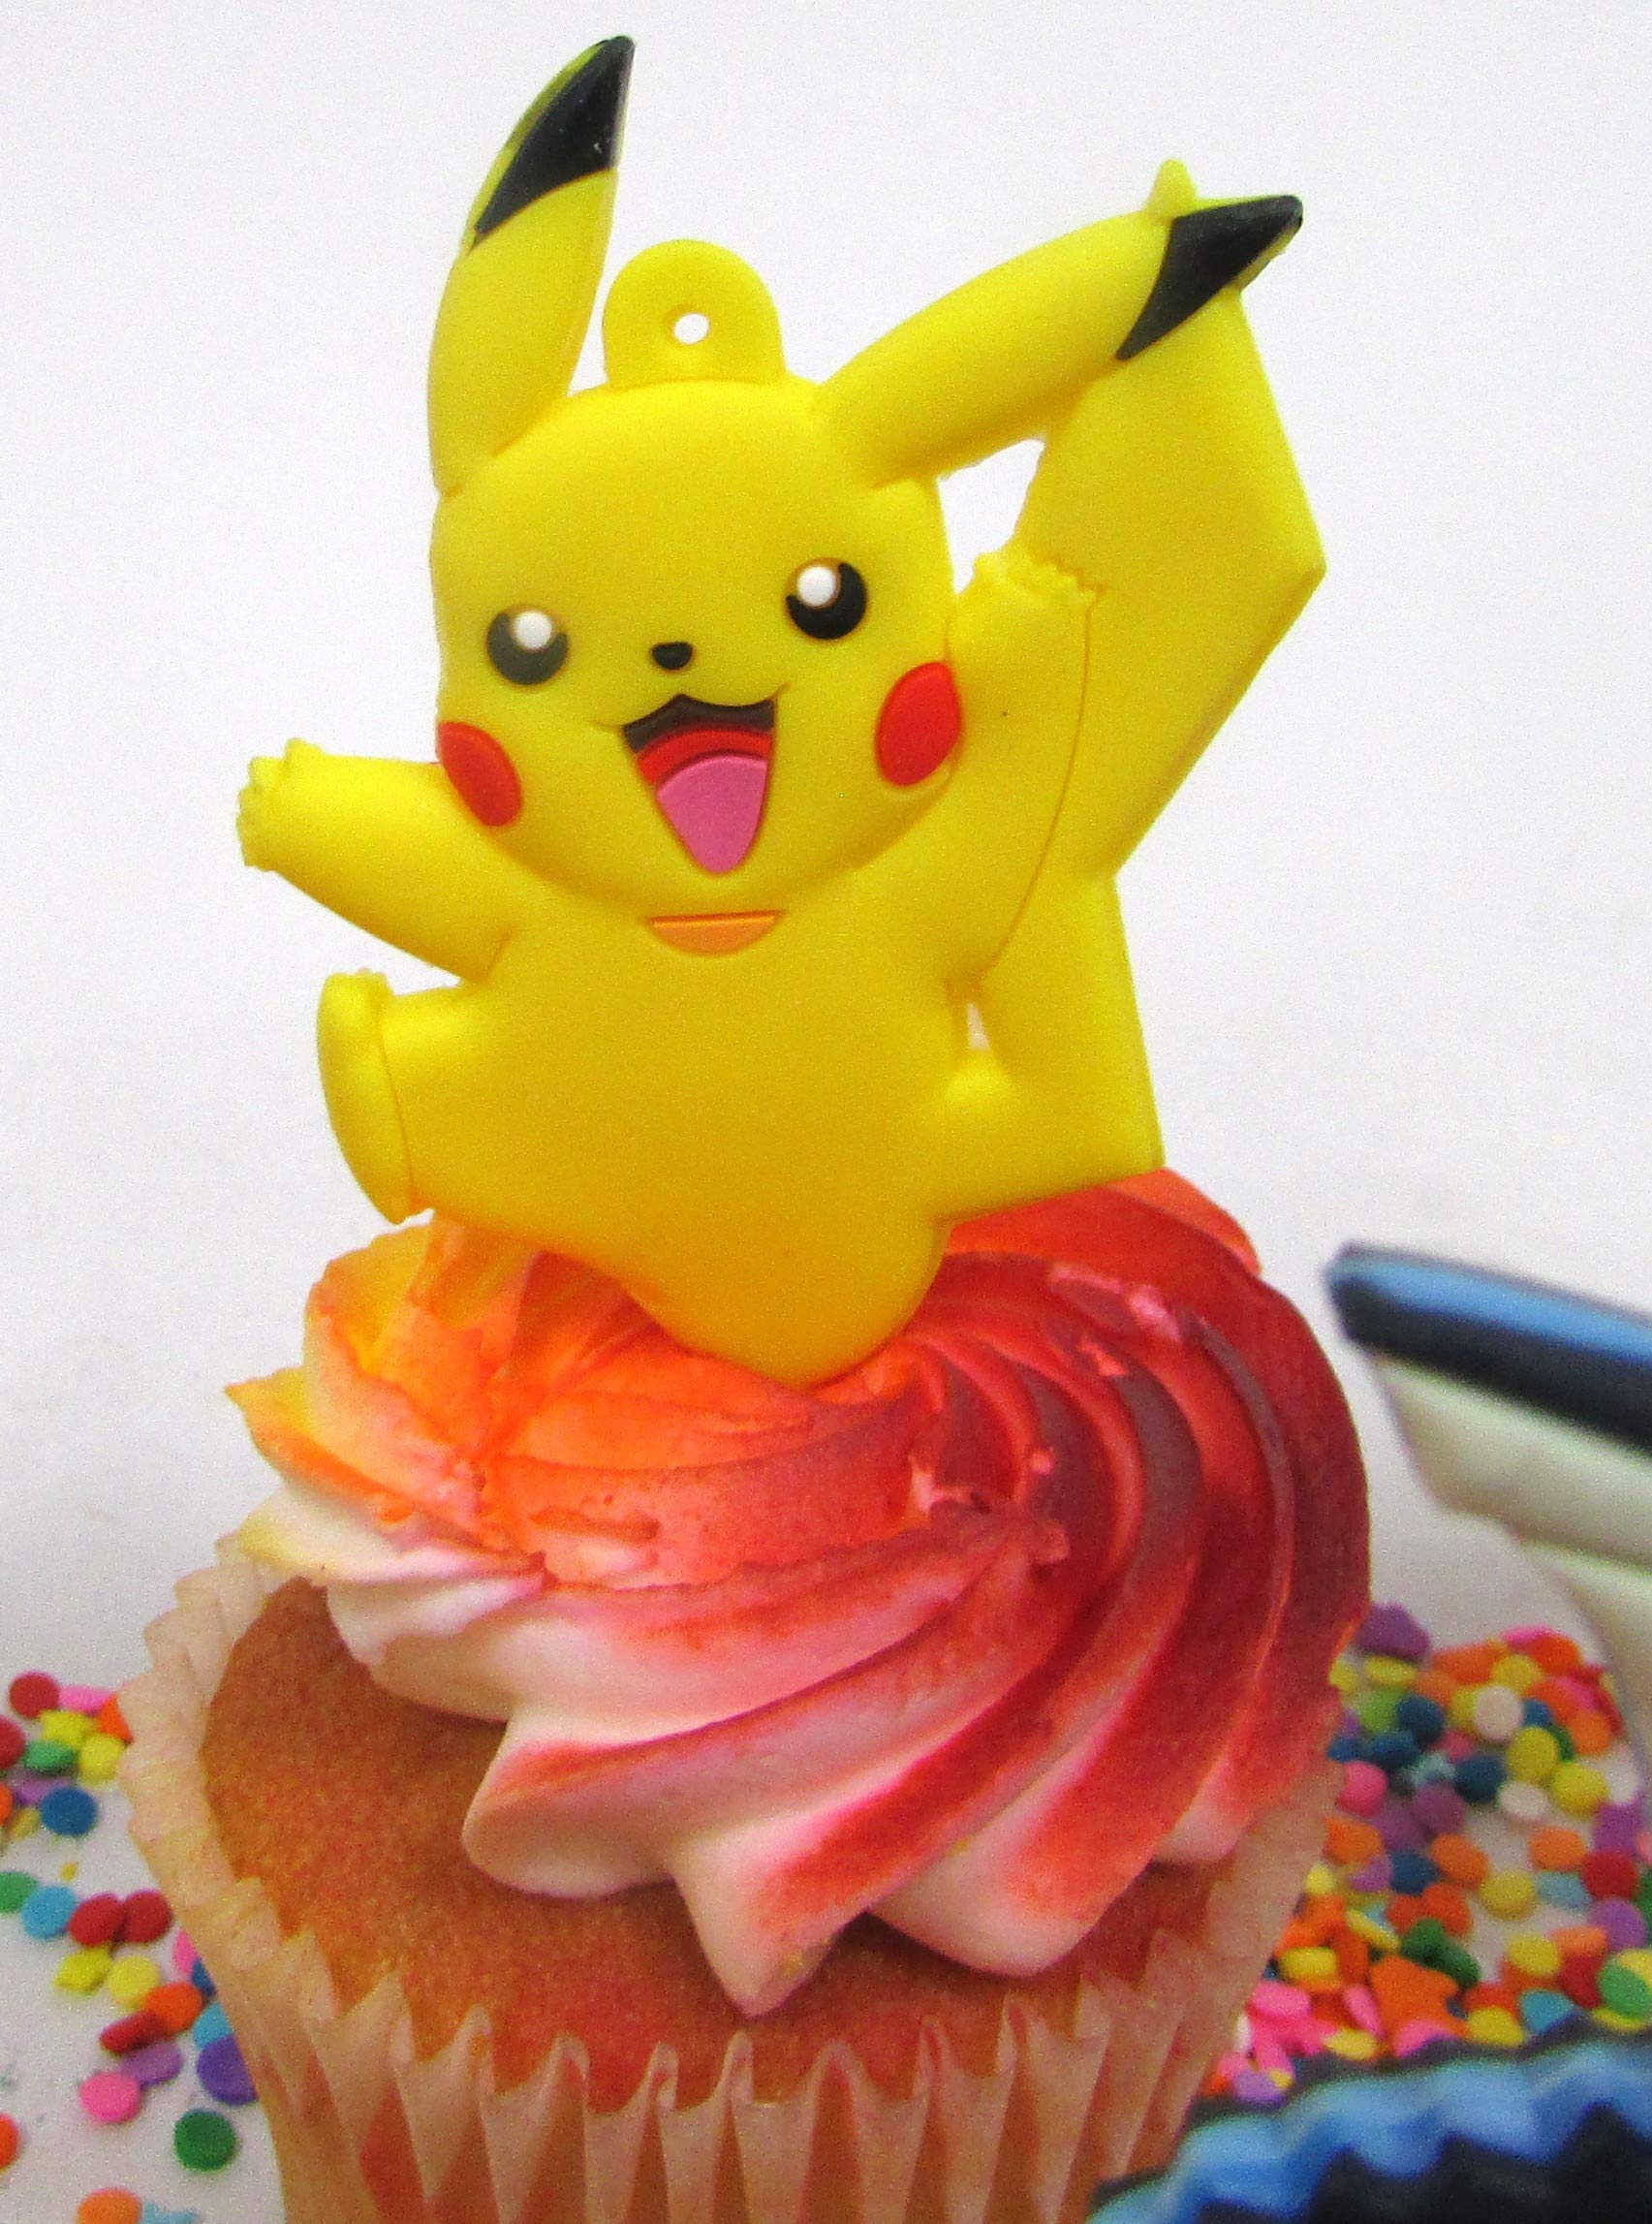 Pikachu and Friends Cupcake Topper Set with 6 Random Pocketmonster Characters and 6 Poke Balls by Cupcake Topper (Image #1)